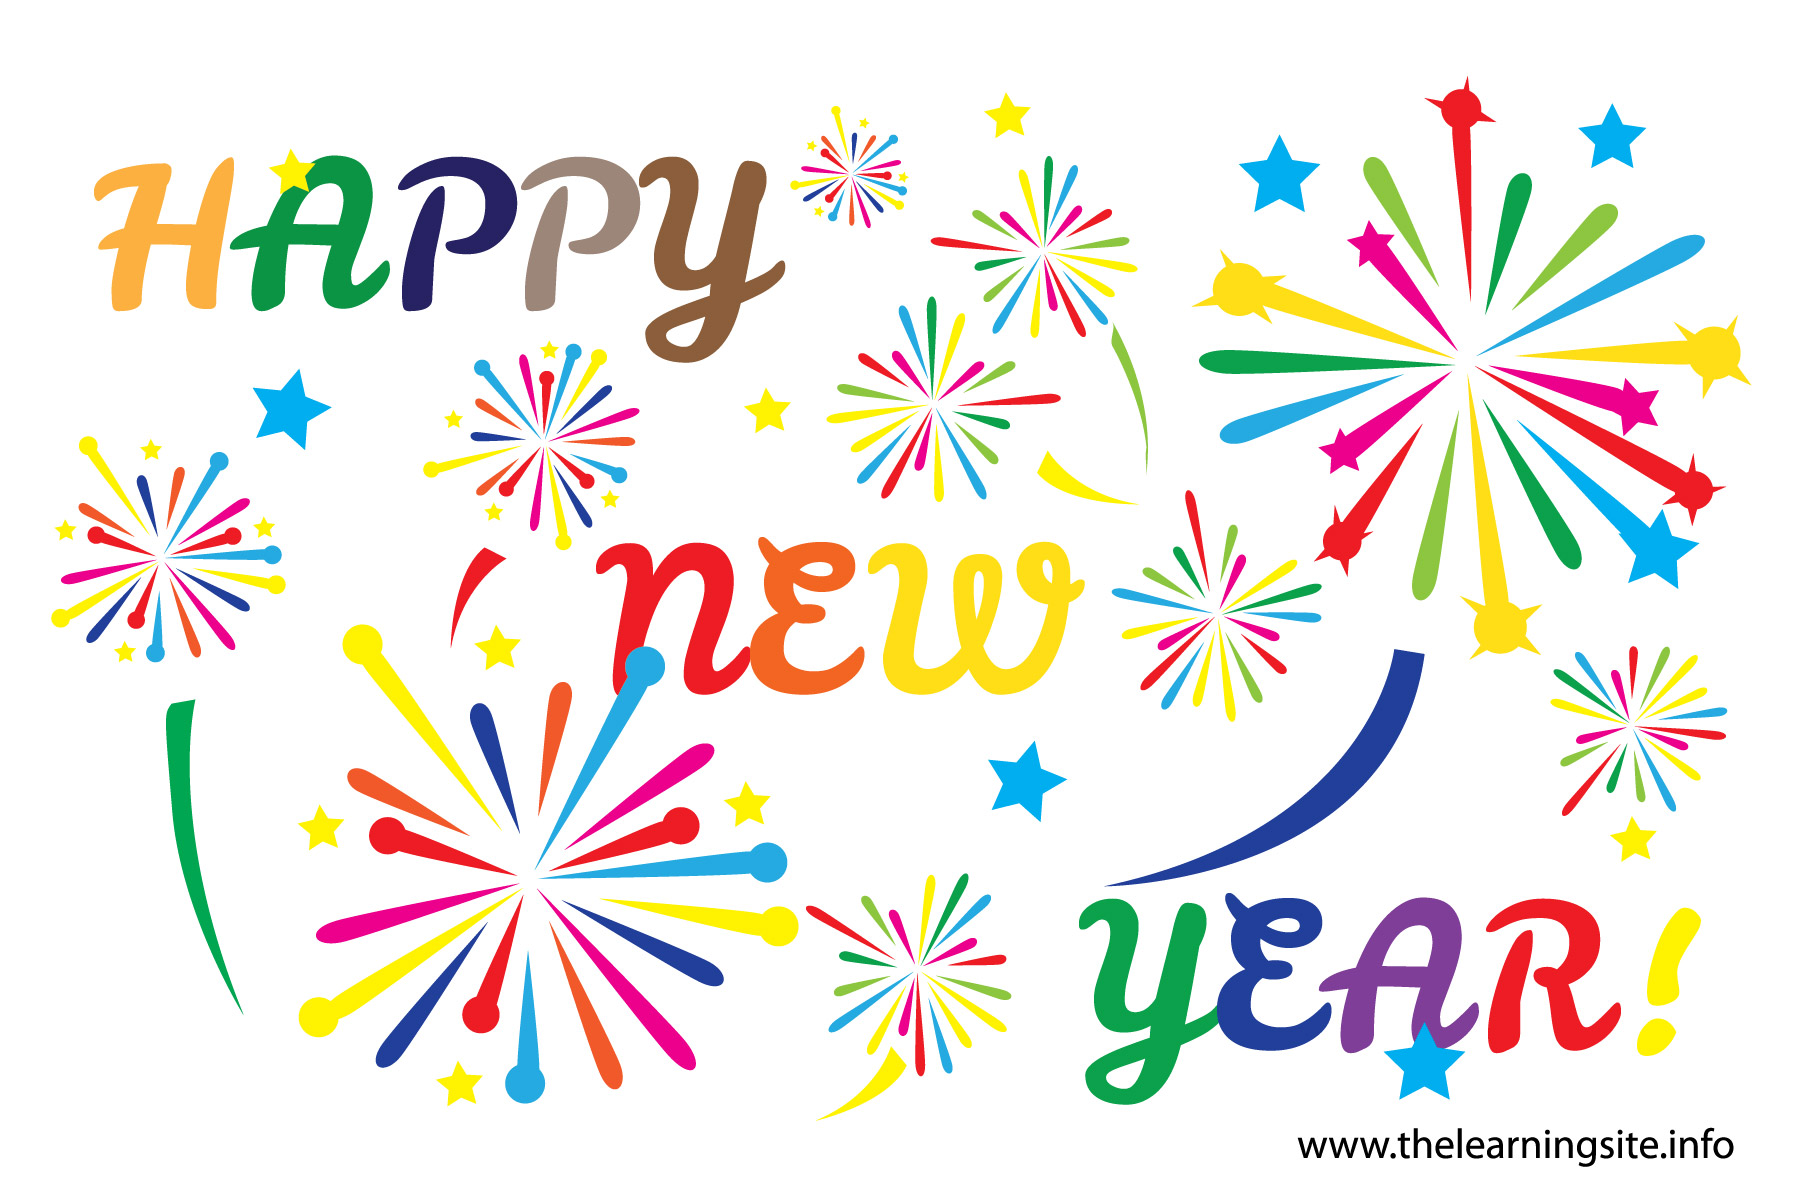 new years eve clipart 2015 - photo #46